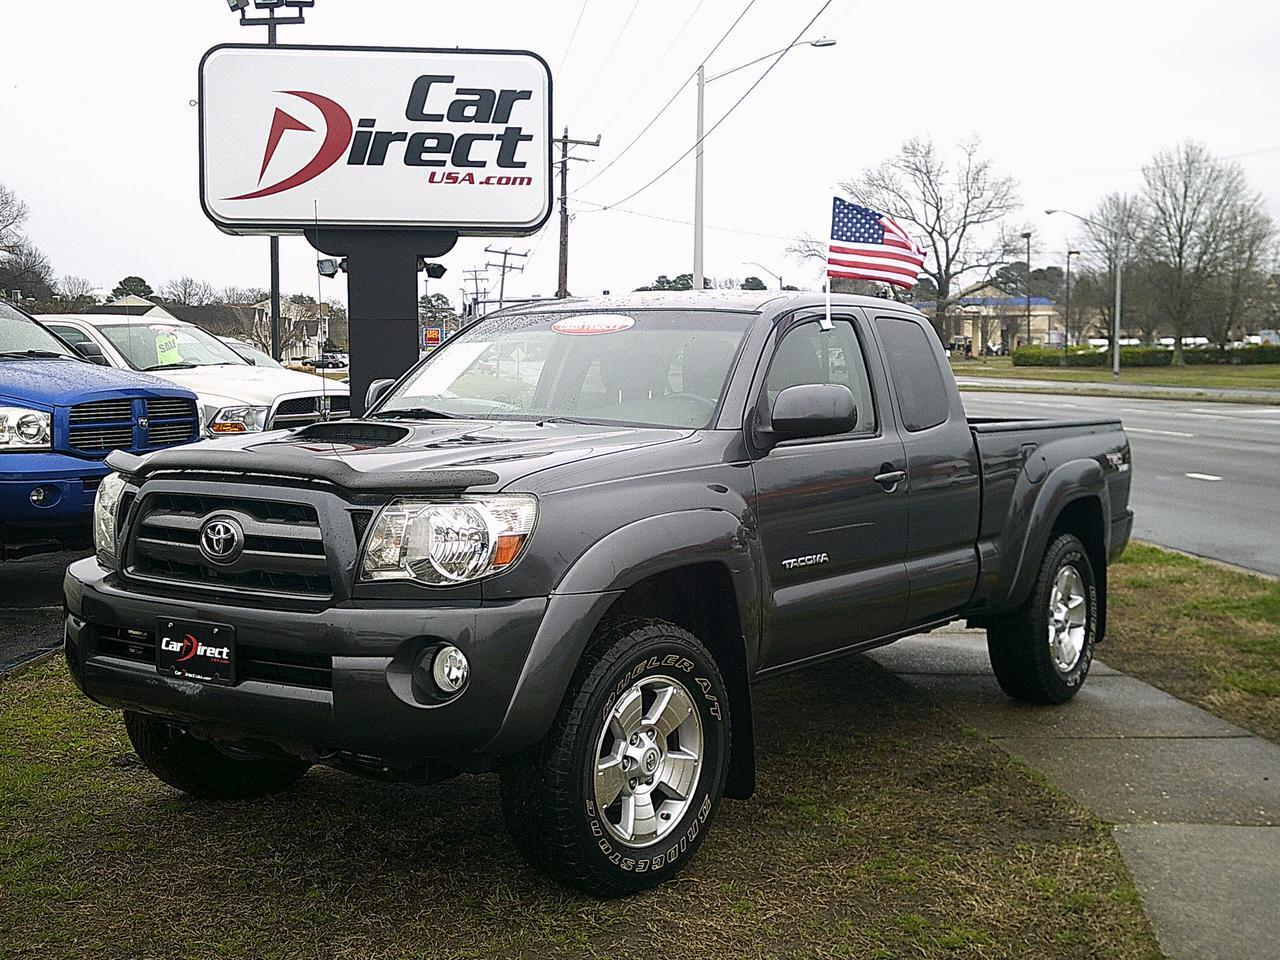 2010 toyota tacoma sr5 trd sport 4x4 autocheck certified back up camera tow package bed. Black Bedroom Furniture Sets. Home Design Ideas